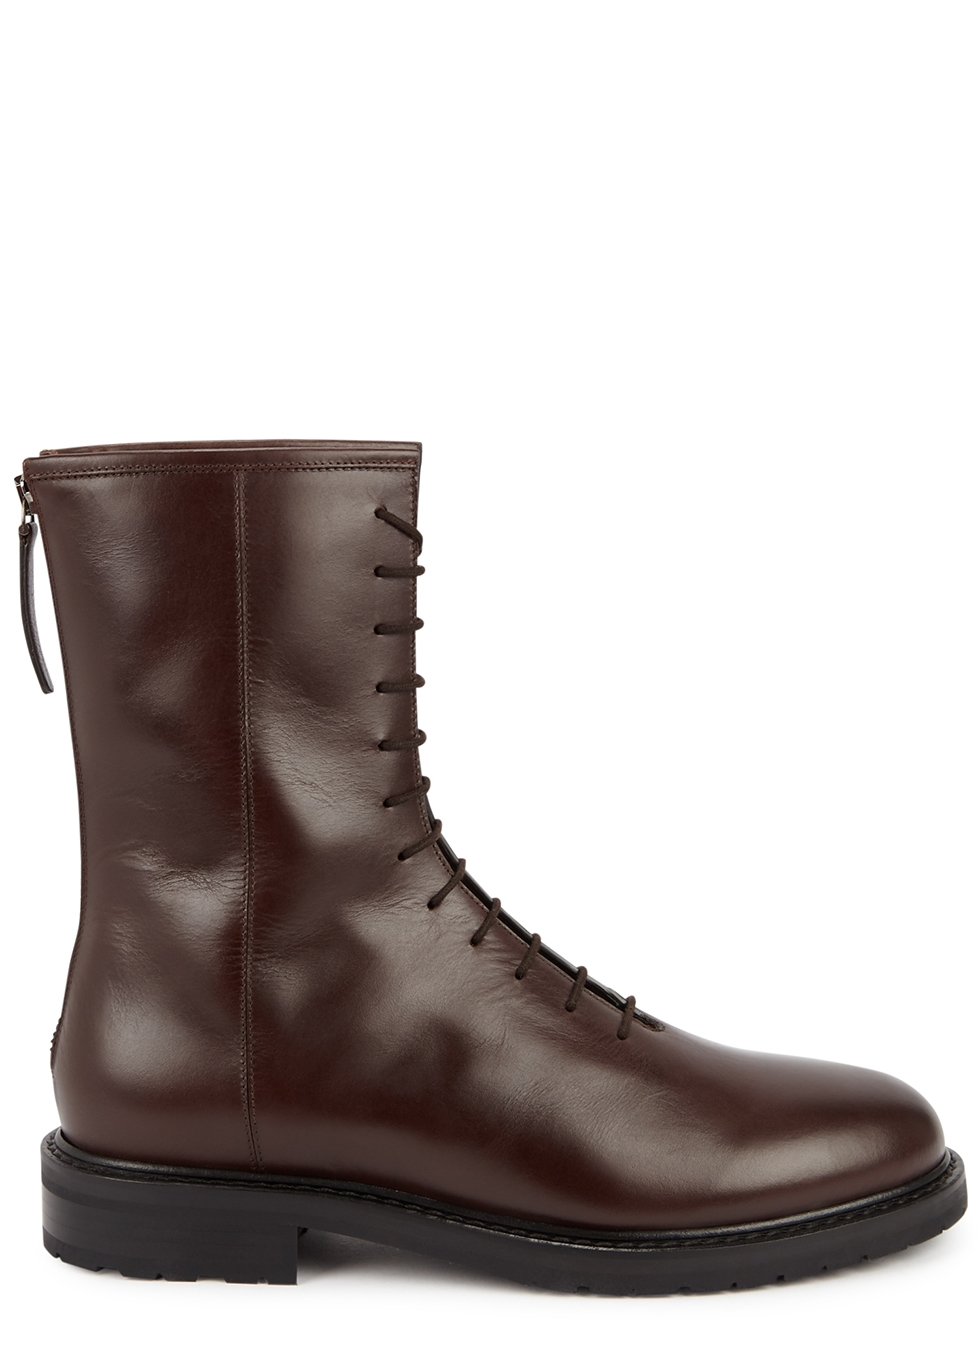 Combat dark brown leather ankle boots